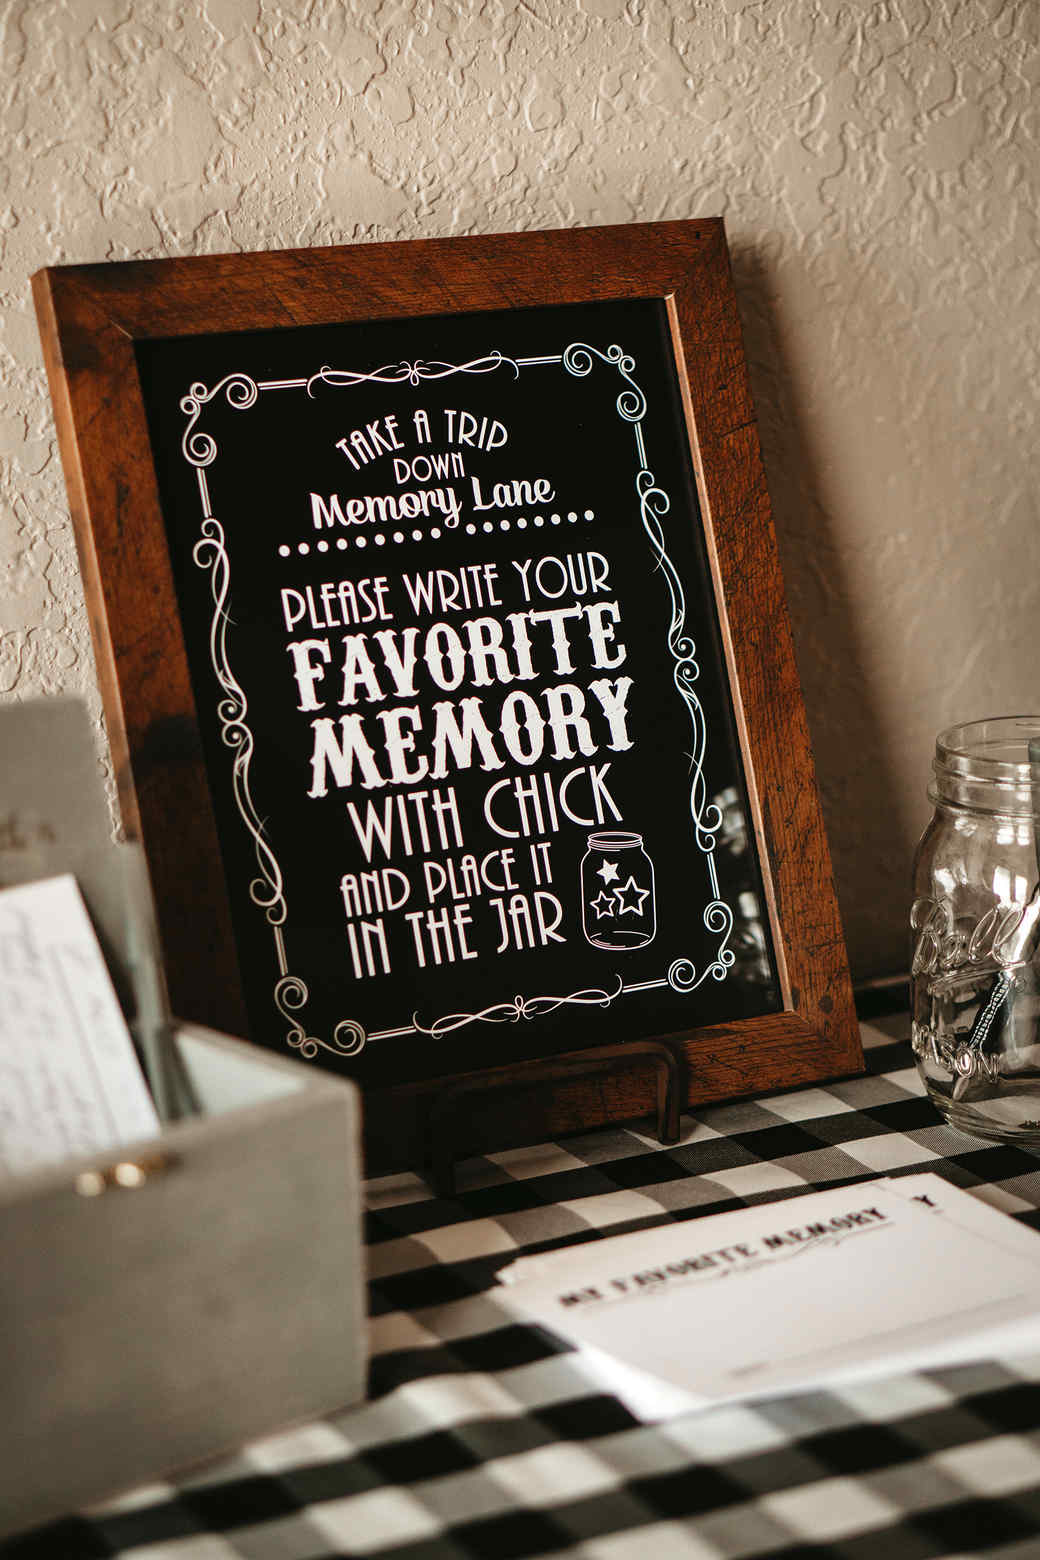 grandfather's 90th birthday chalkboard favorite memories sign